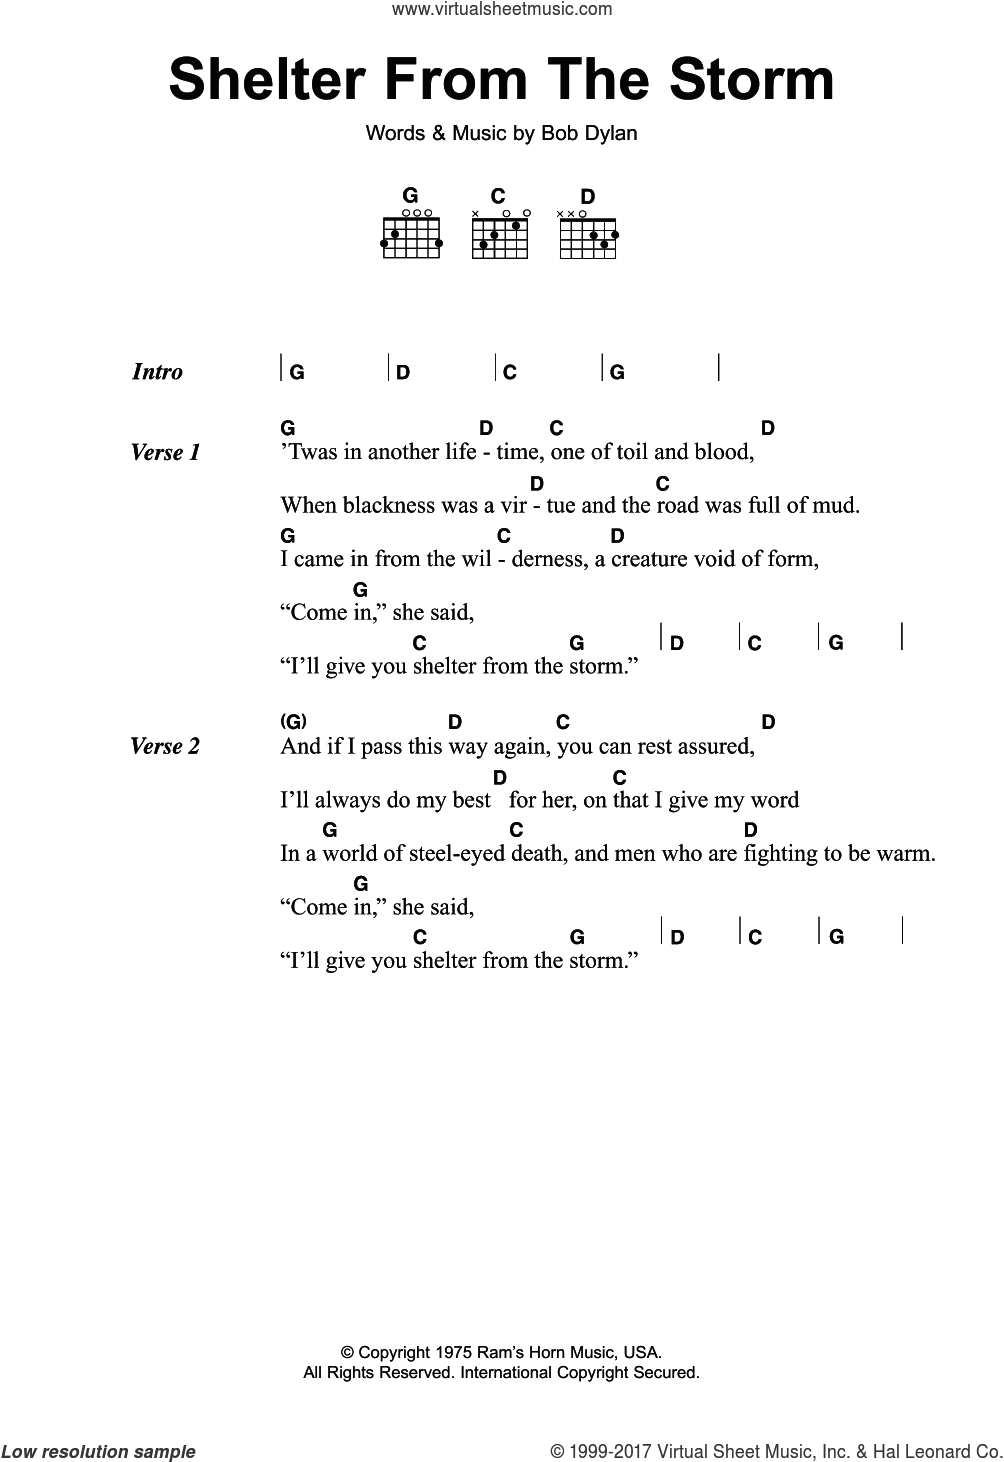 Shelter From The Storm sheet music for guitar (chords) by Bob Dylan, intermediate skill level